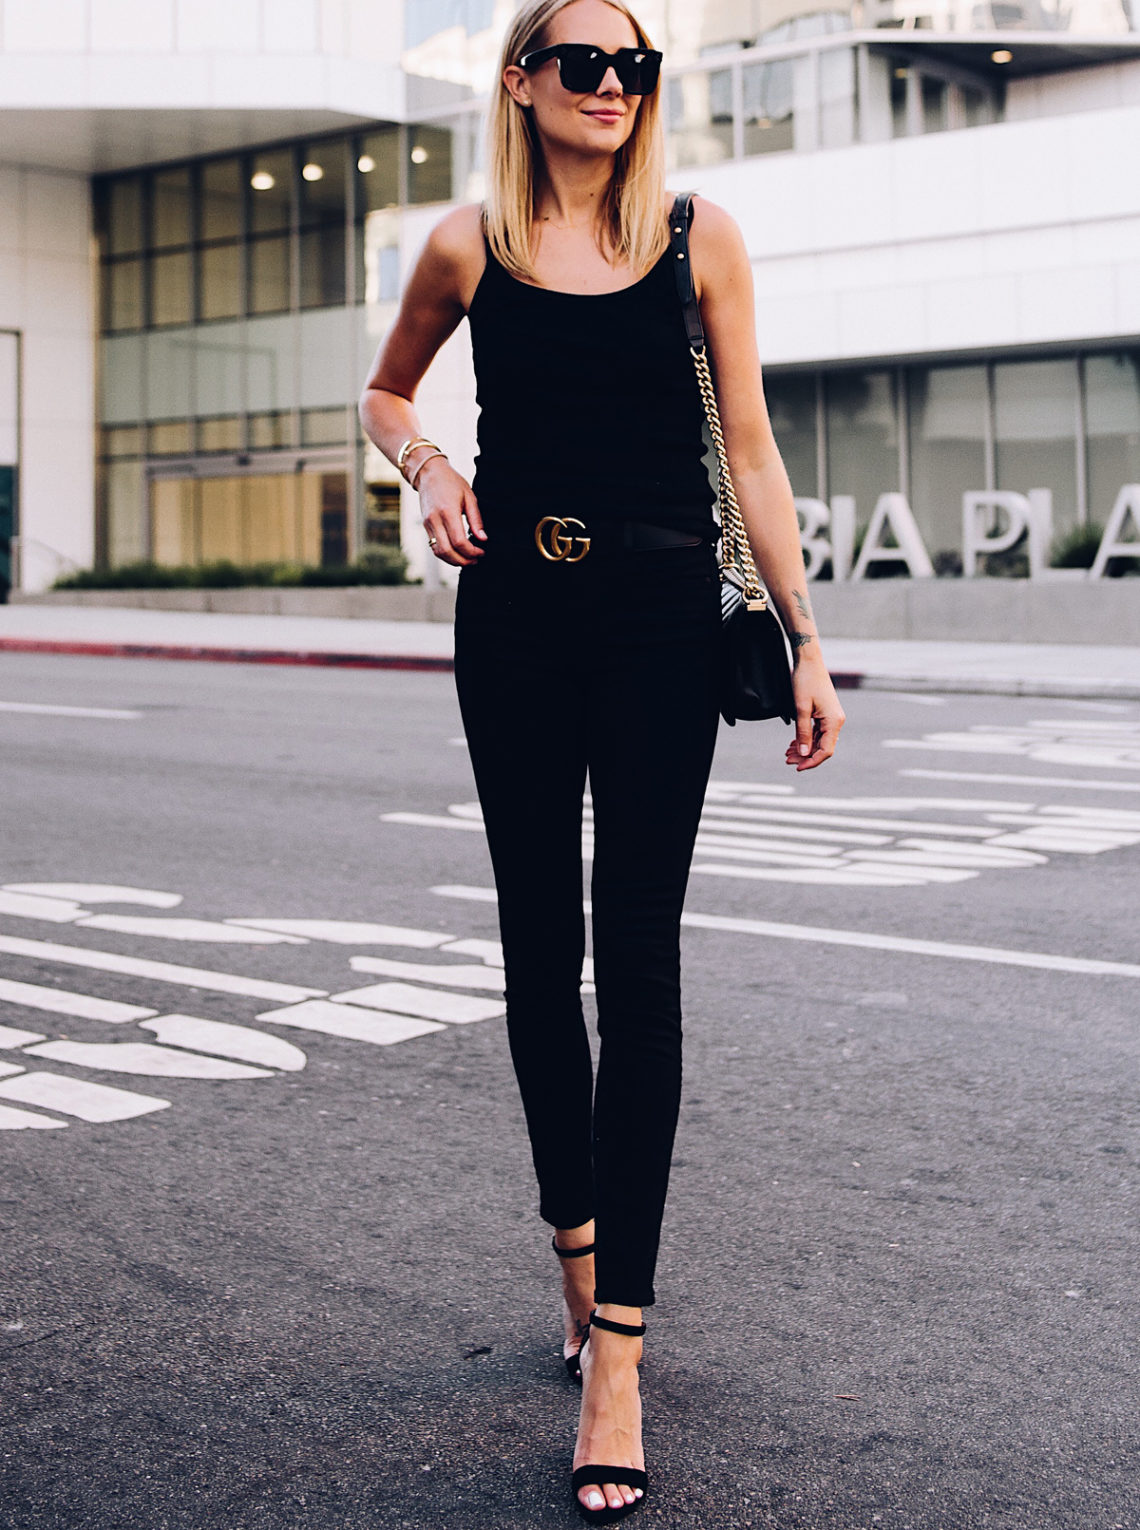 Blonde Woman Wearing Topshop Black Tank Black Skinny Jeans Black Ankle Strap Heeled Sandals Gucci Logo Belt Chanel Boy Bag Black Fashion Jackson San Diego Blogger Fashion Blogger Street Style